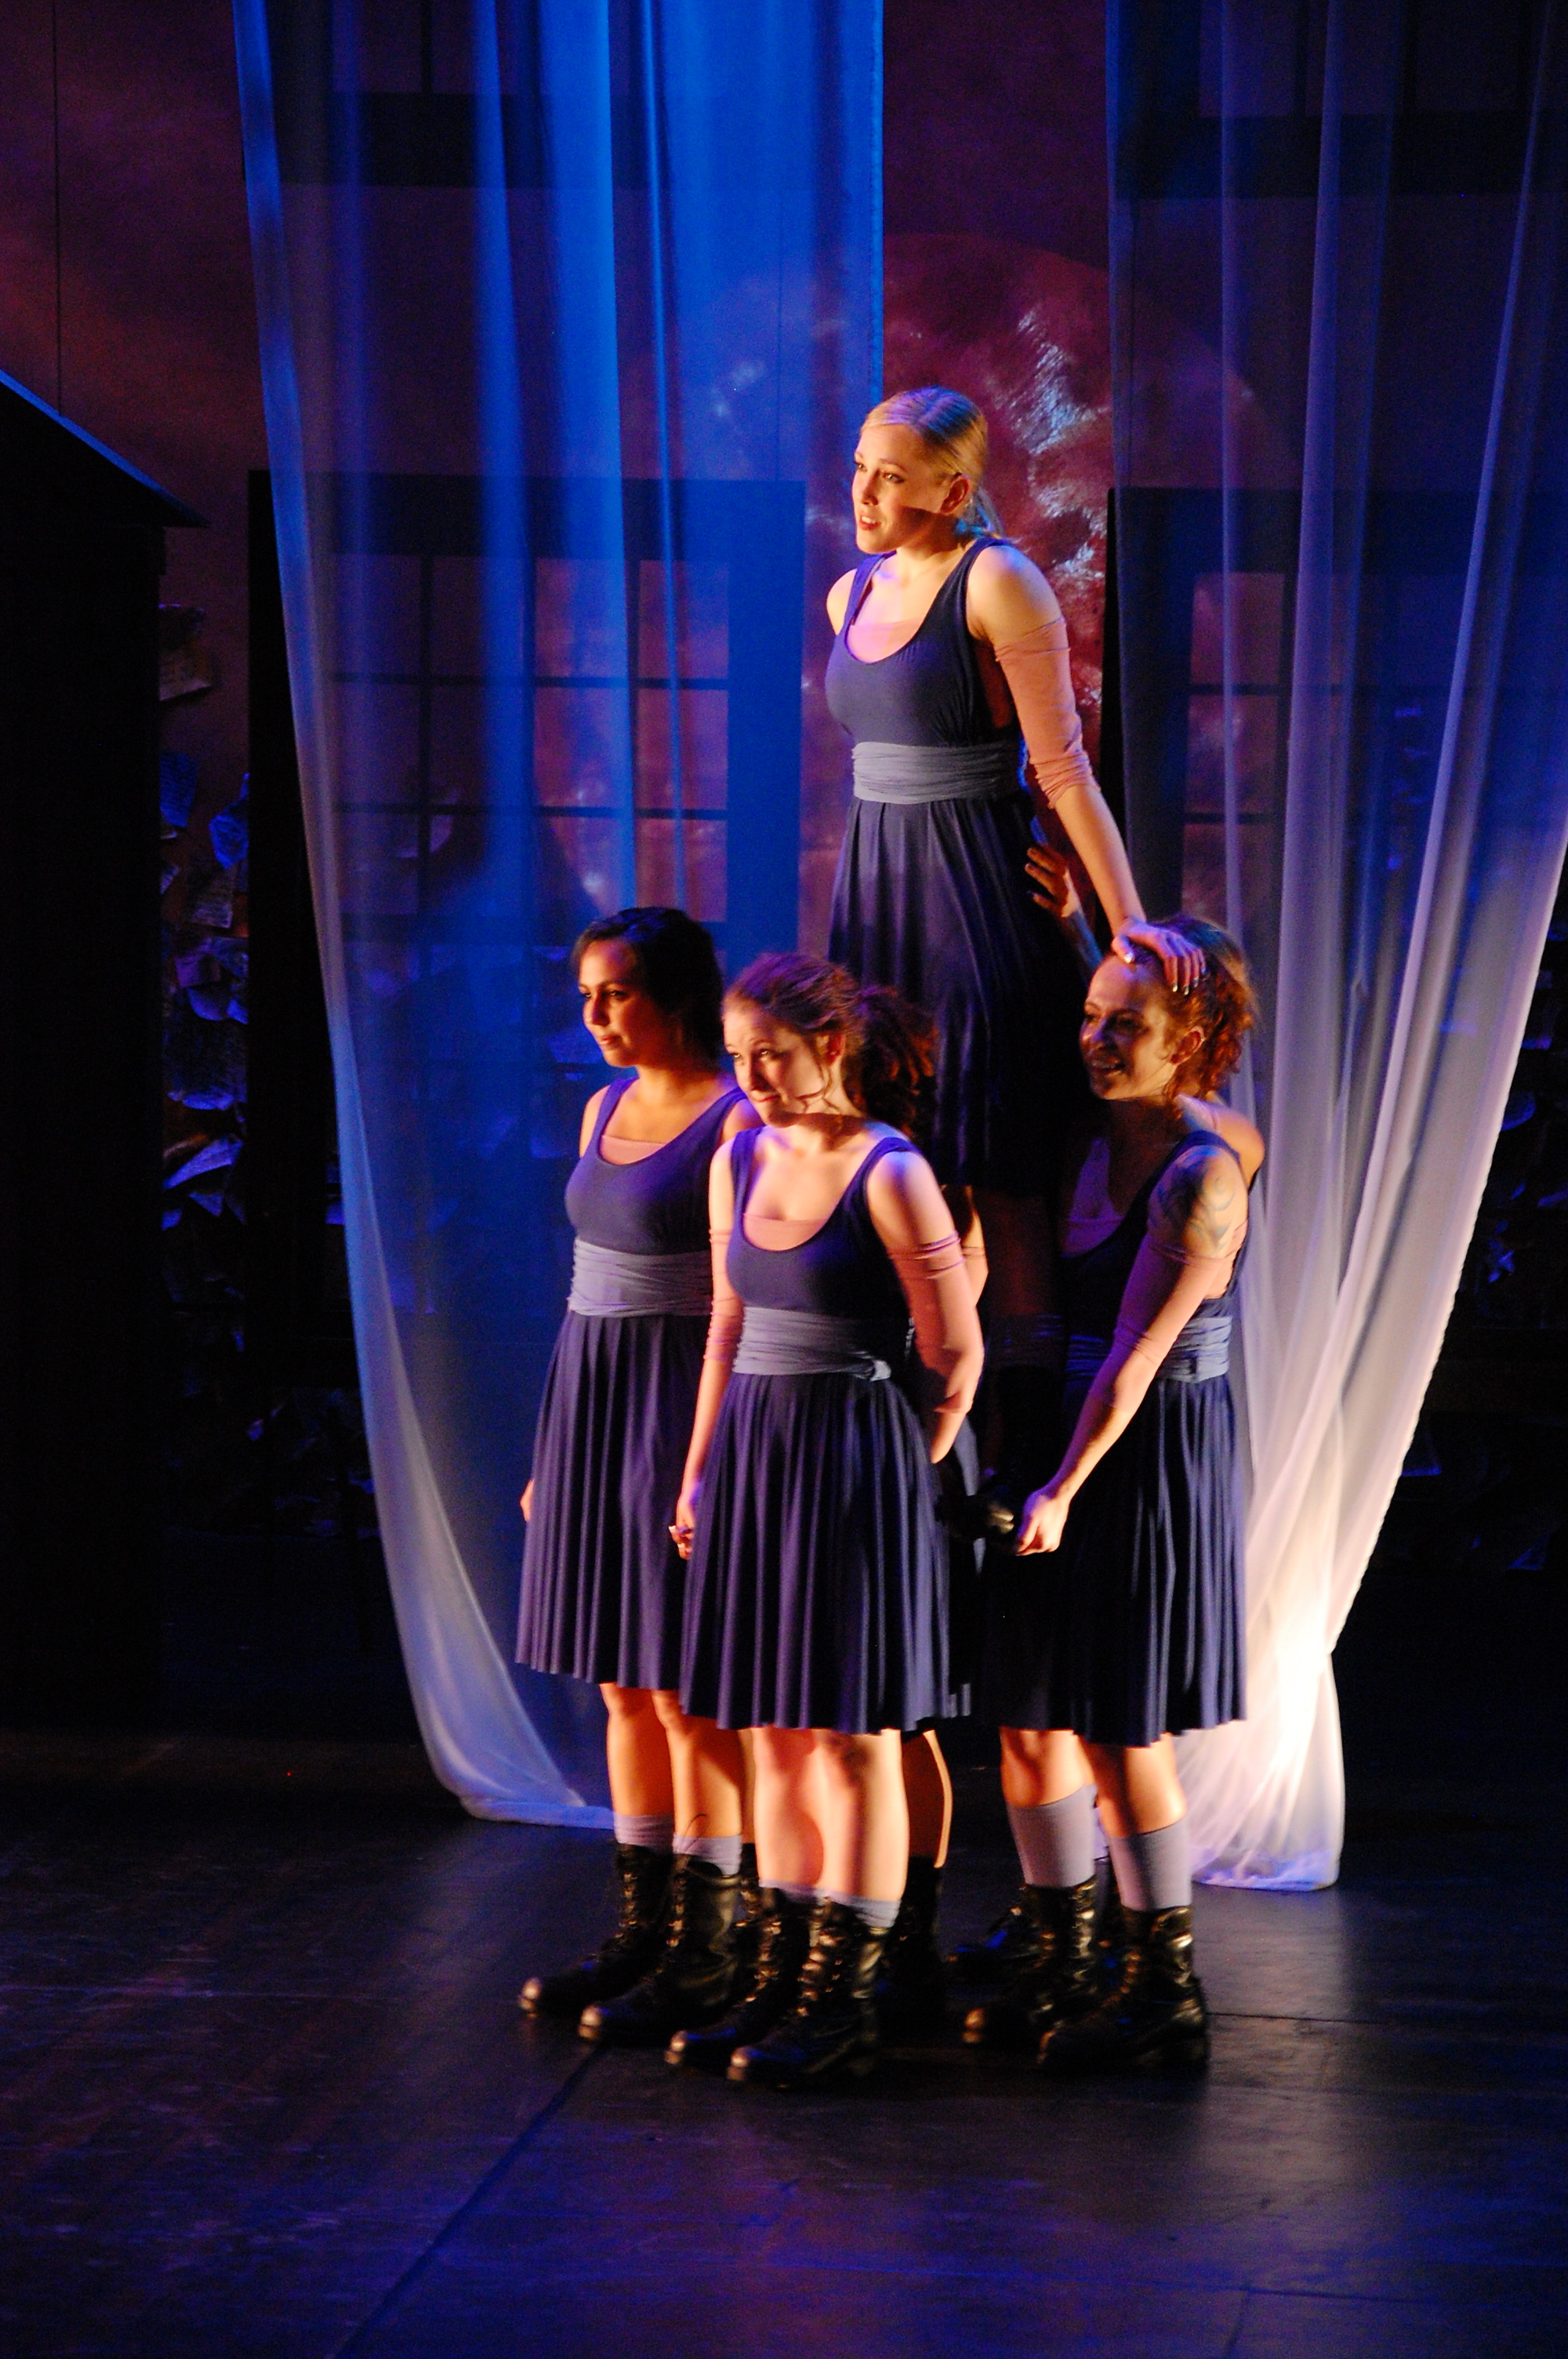 Named one of the best Bay Area theater productions of 2010 by both  San Francisco Bay Guardian and  theidiolect.com